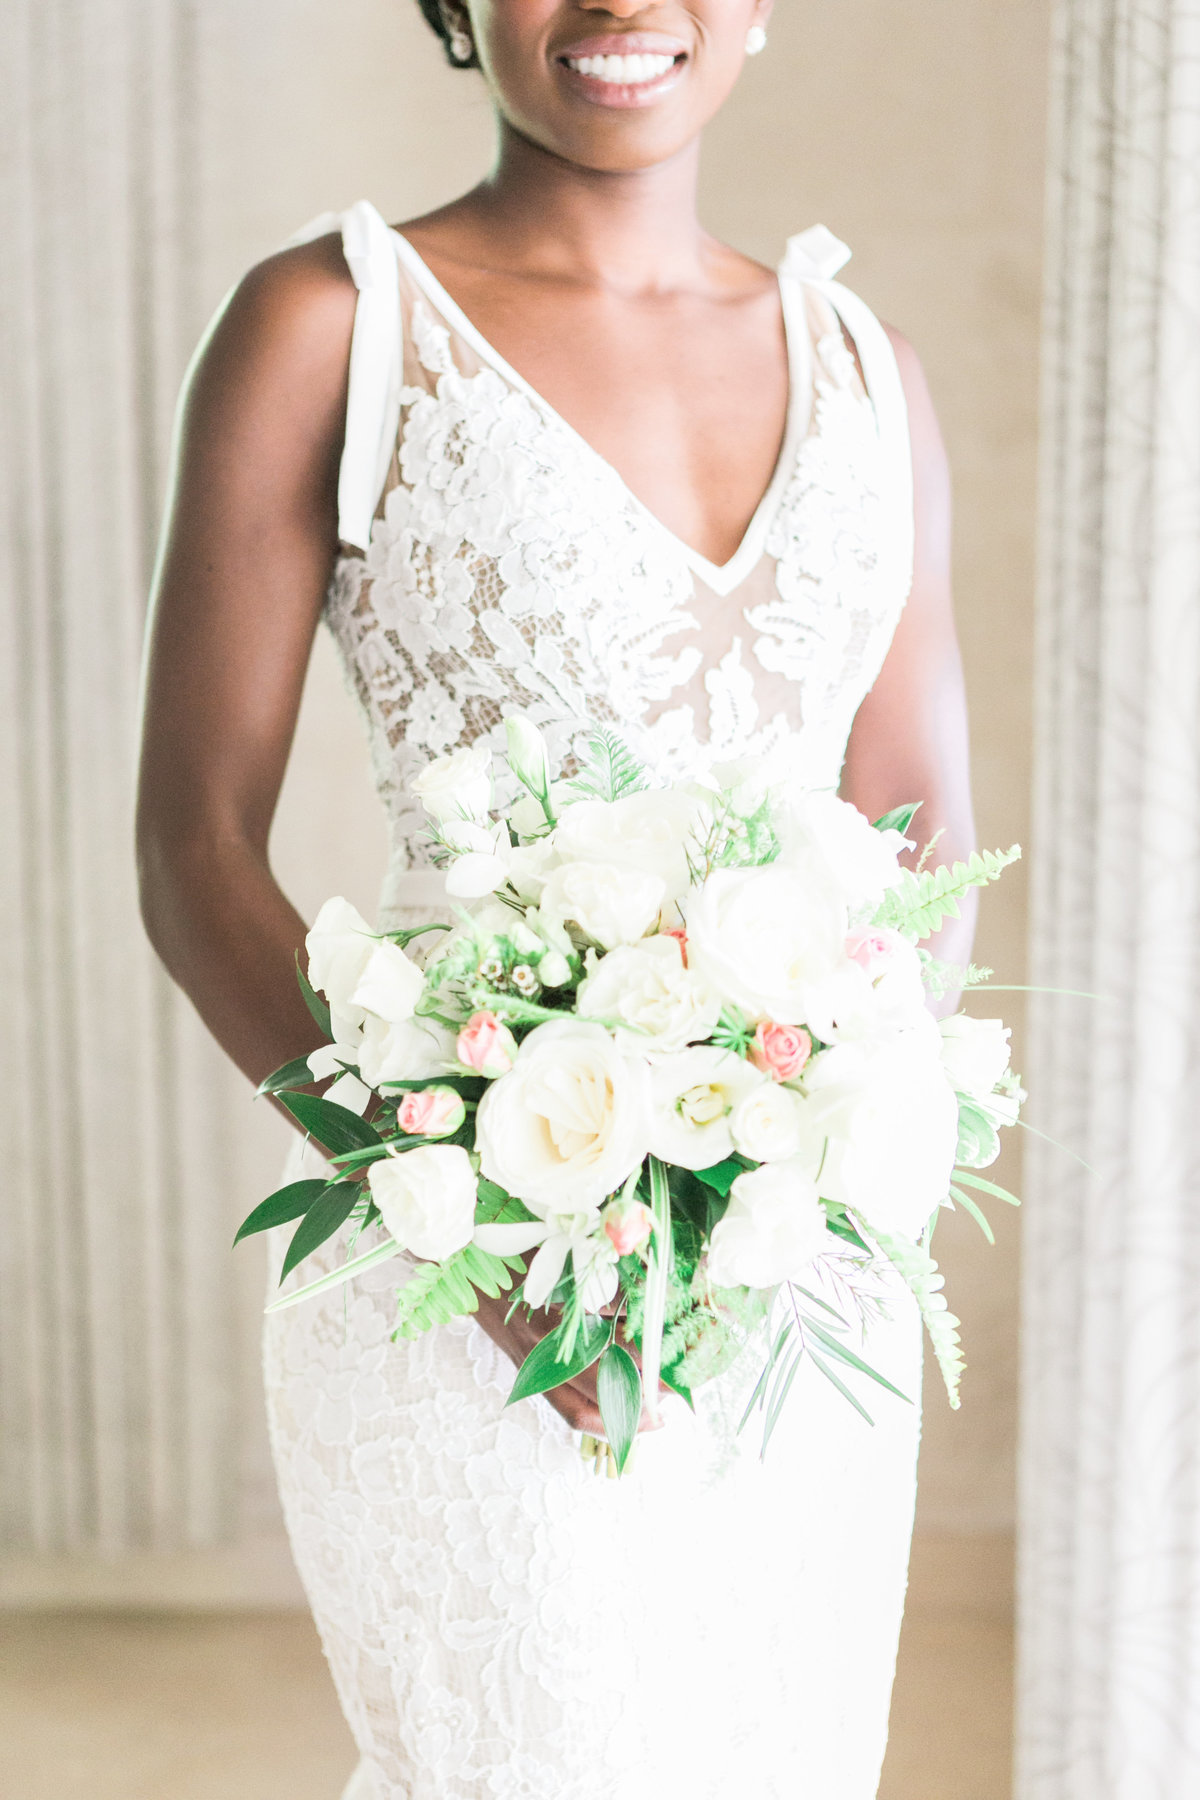 Bouquet and lace wedding gown, fine art wedding photography